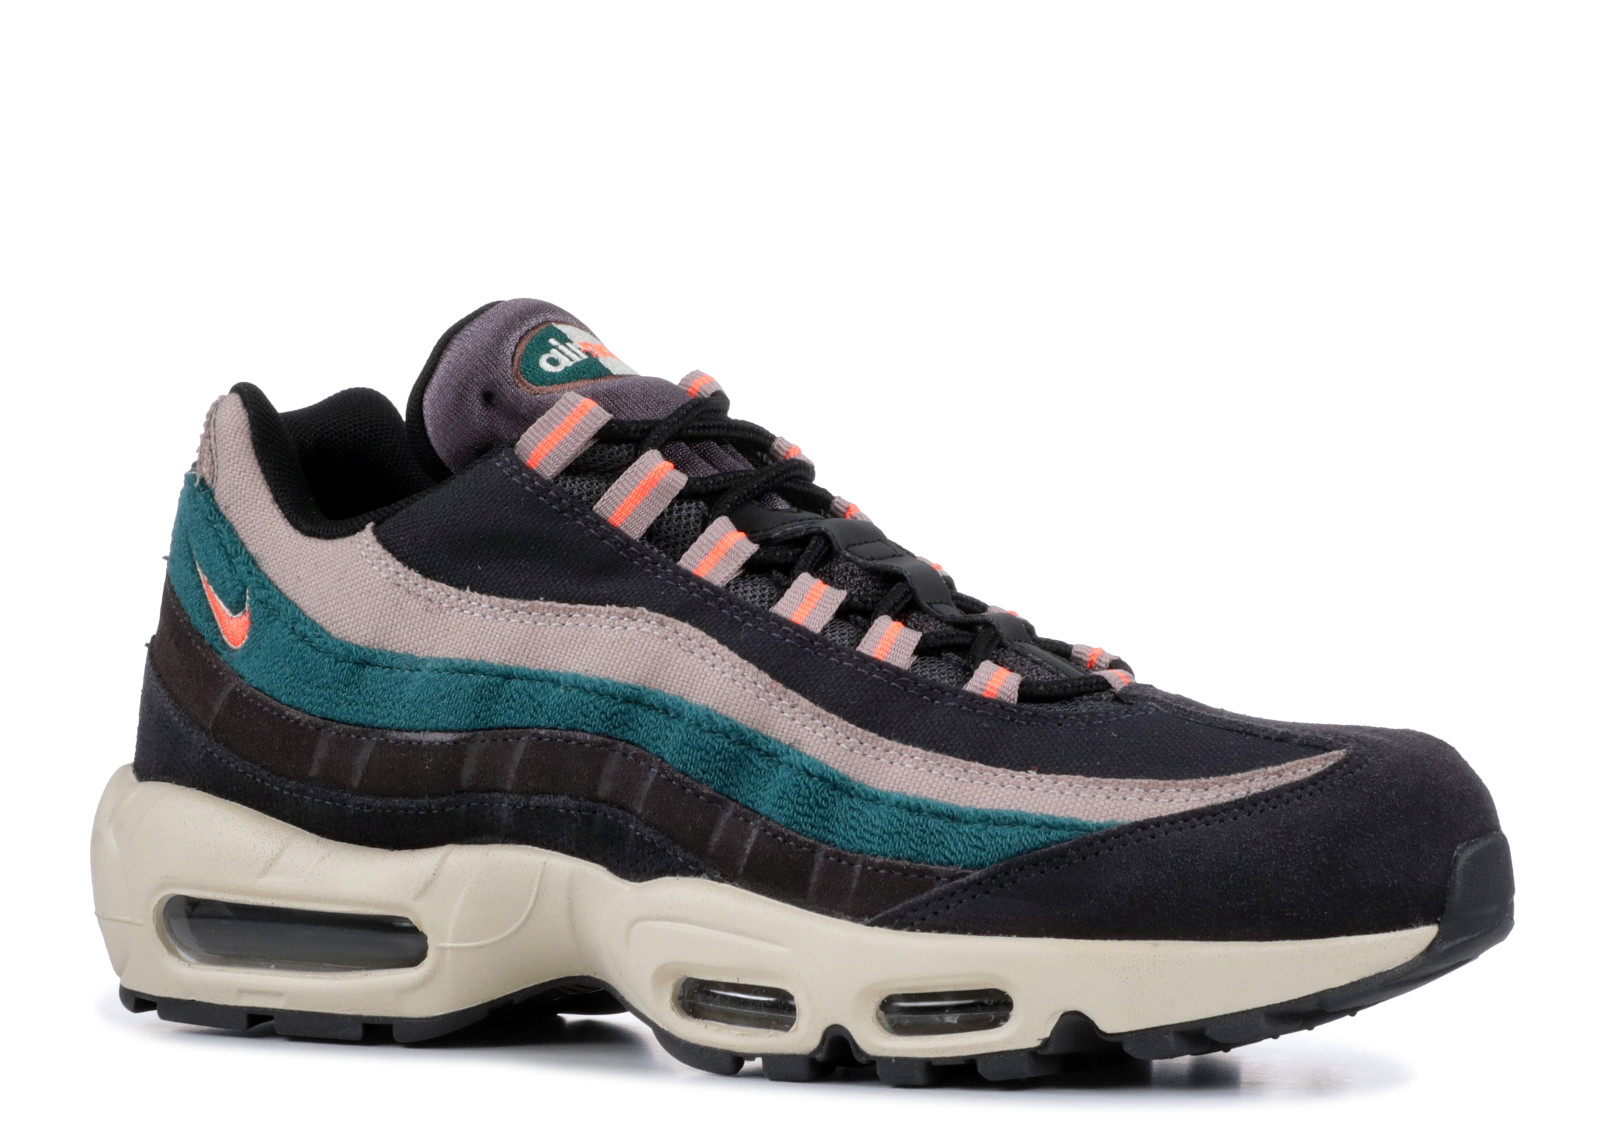 Air Max 95 Grey Rainforest Bright Mango